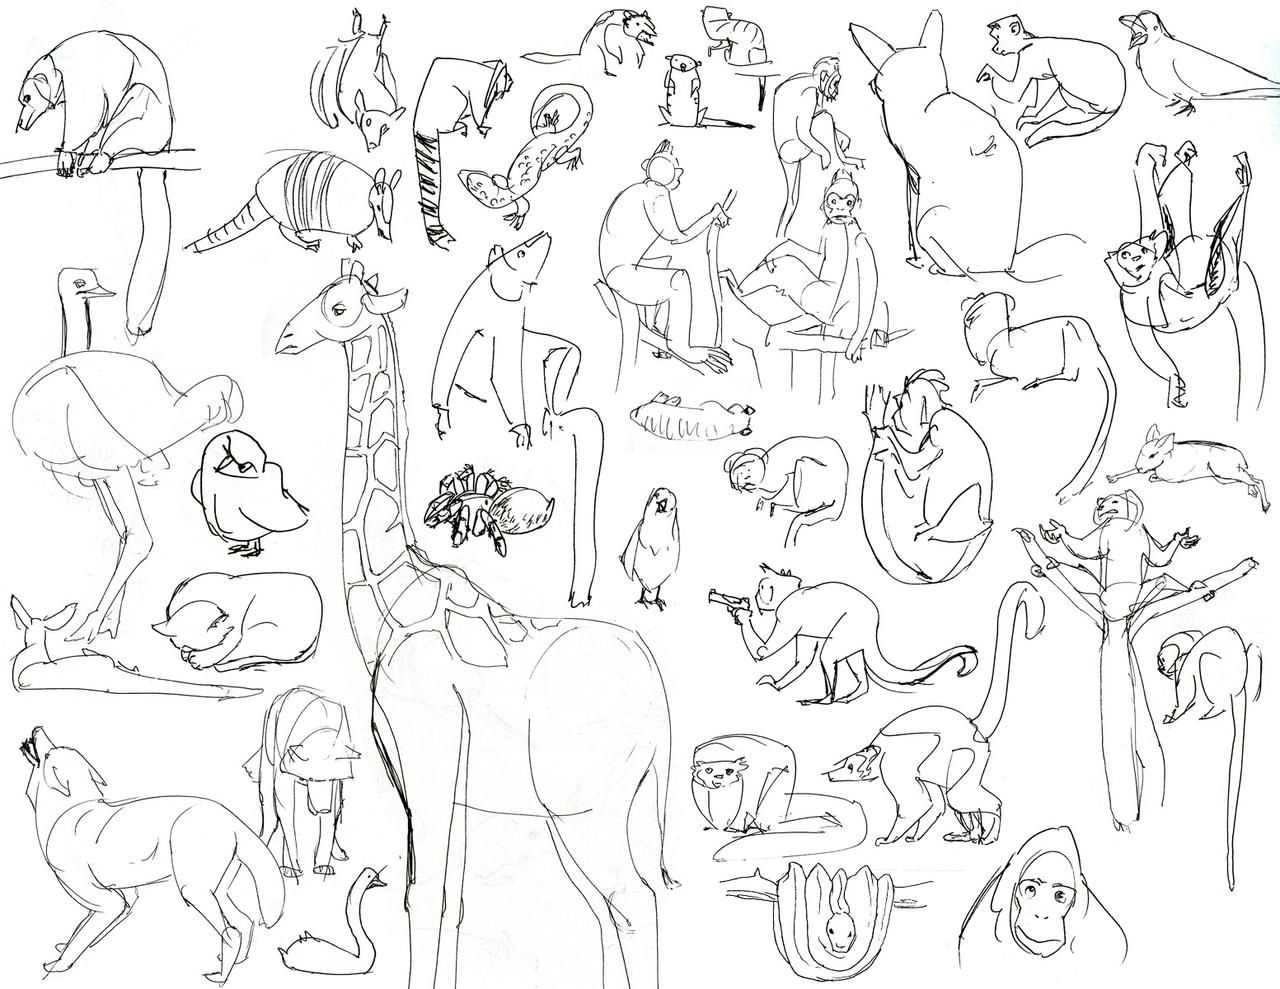 Zoo Sketches by HyraxAttax